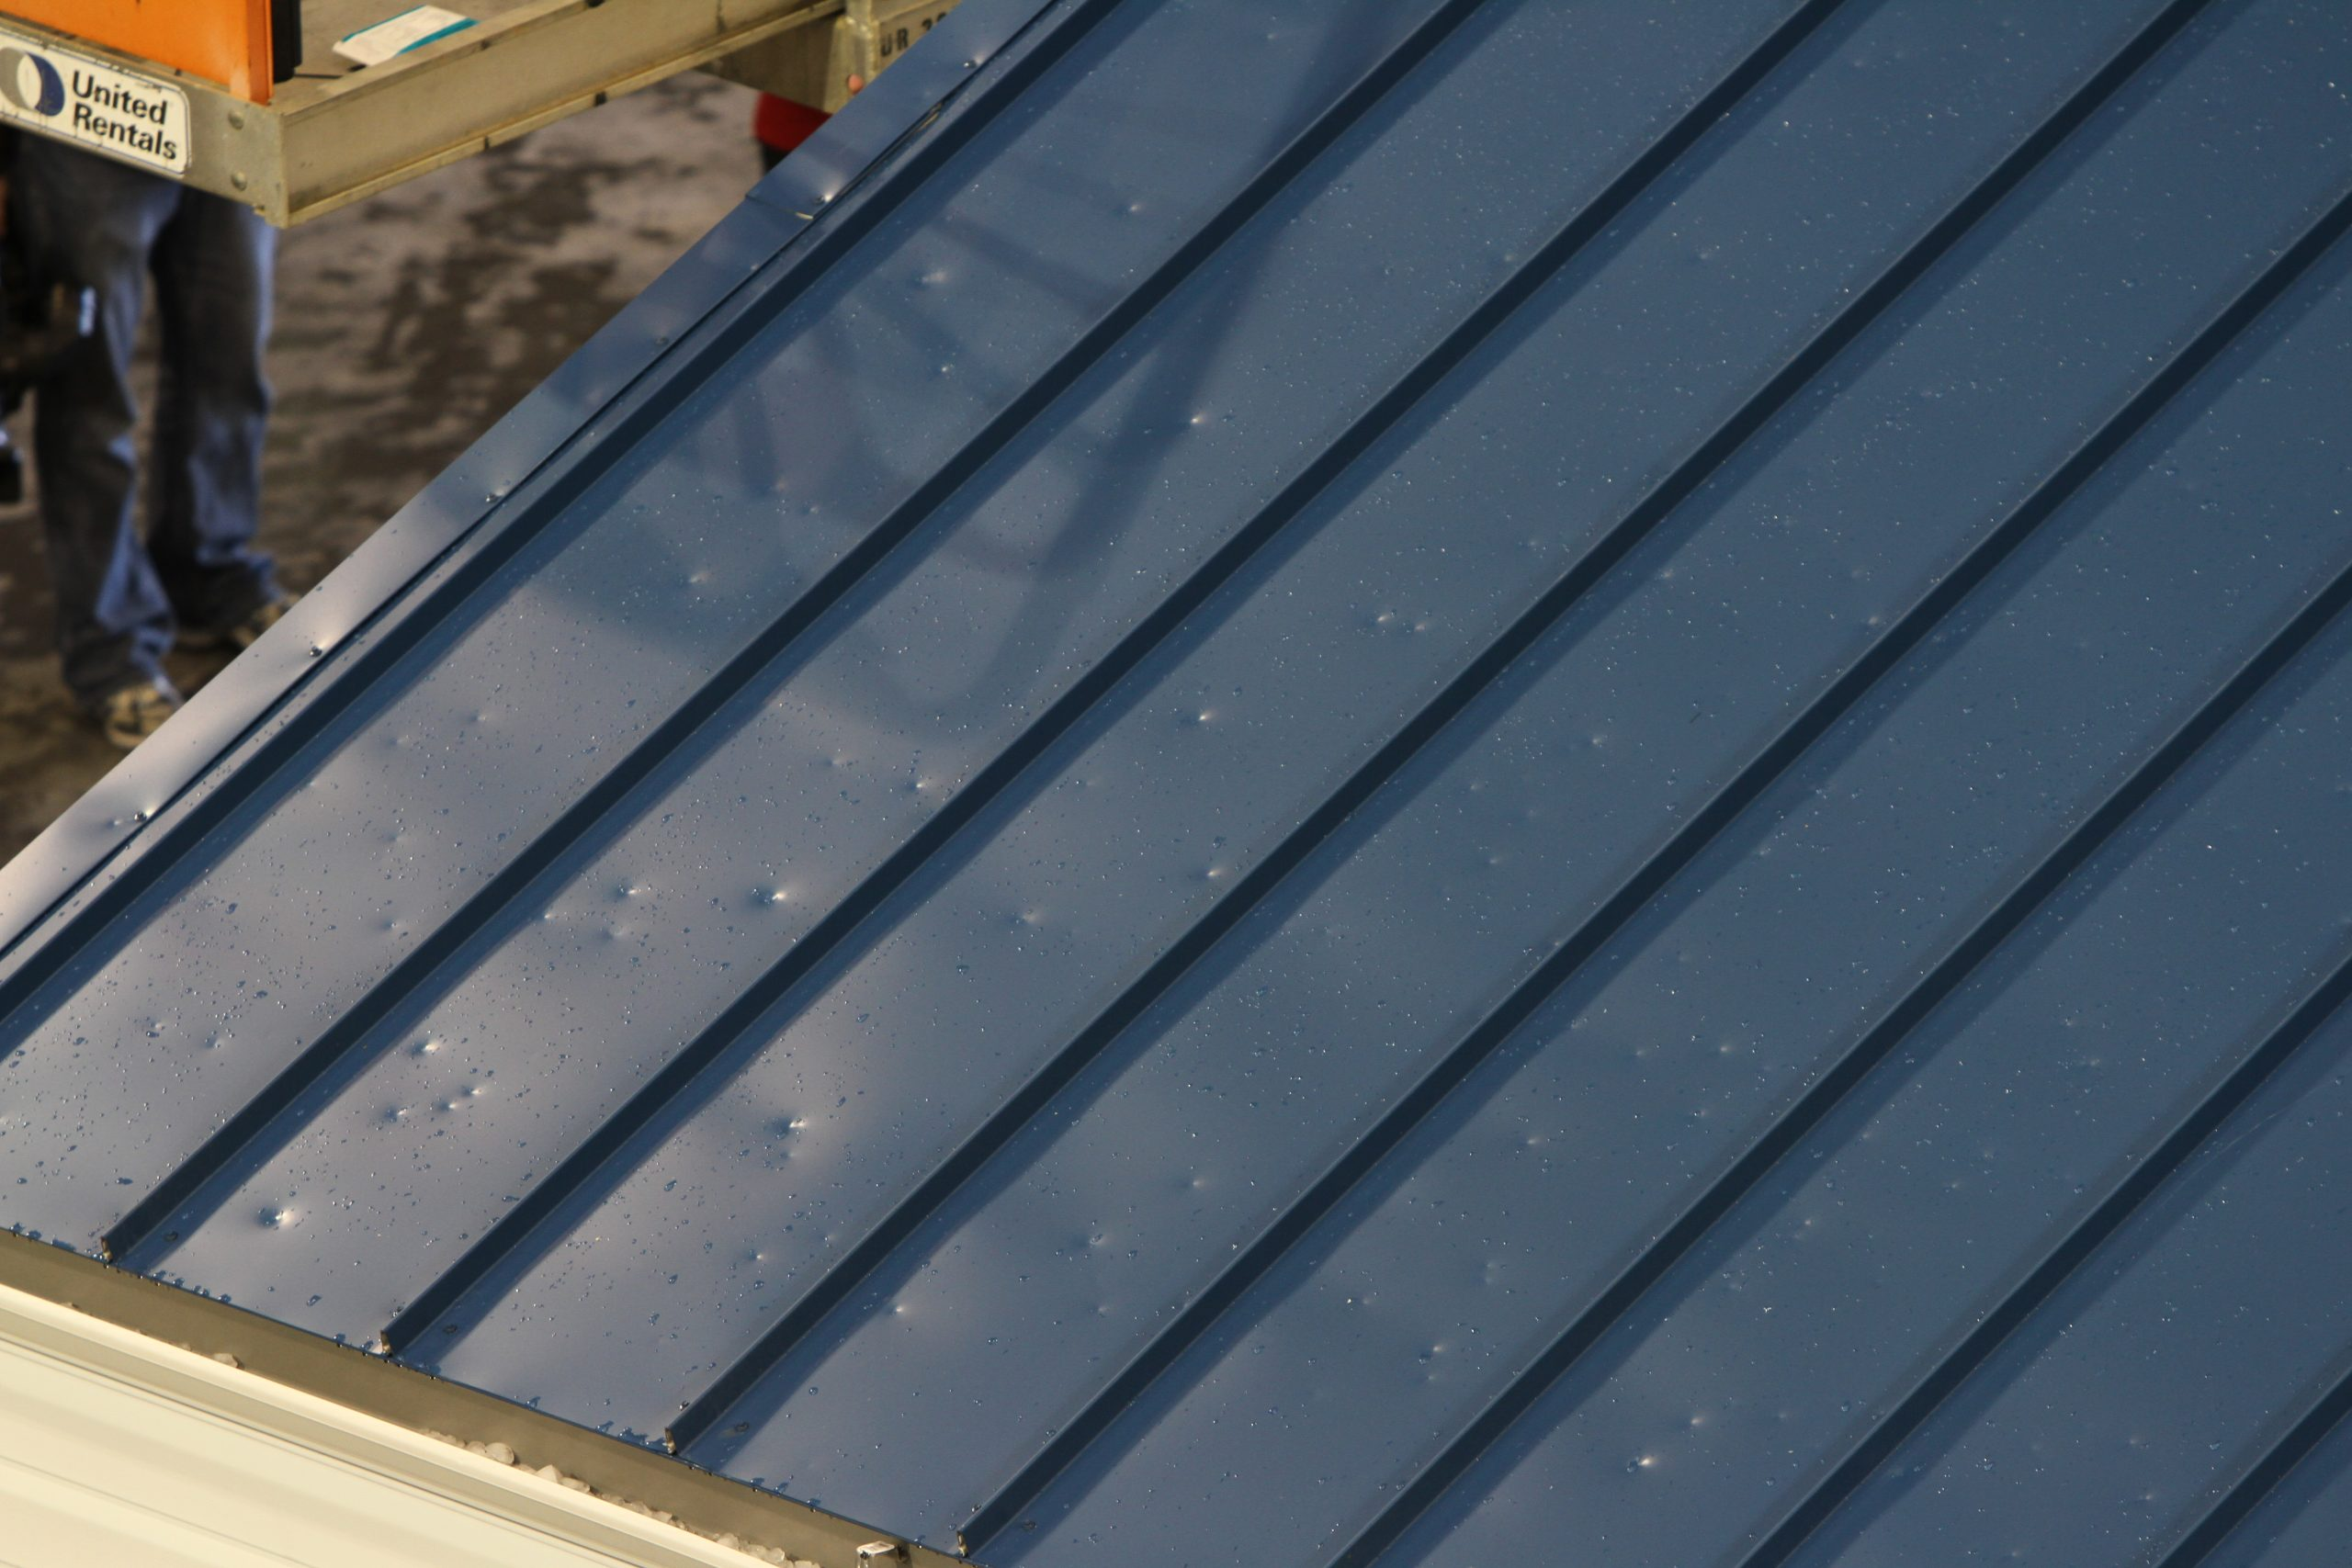 How To Tell If Your Roof Has Hail Damage